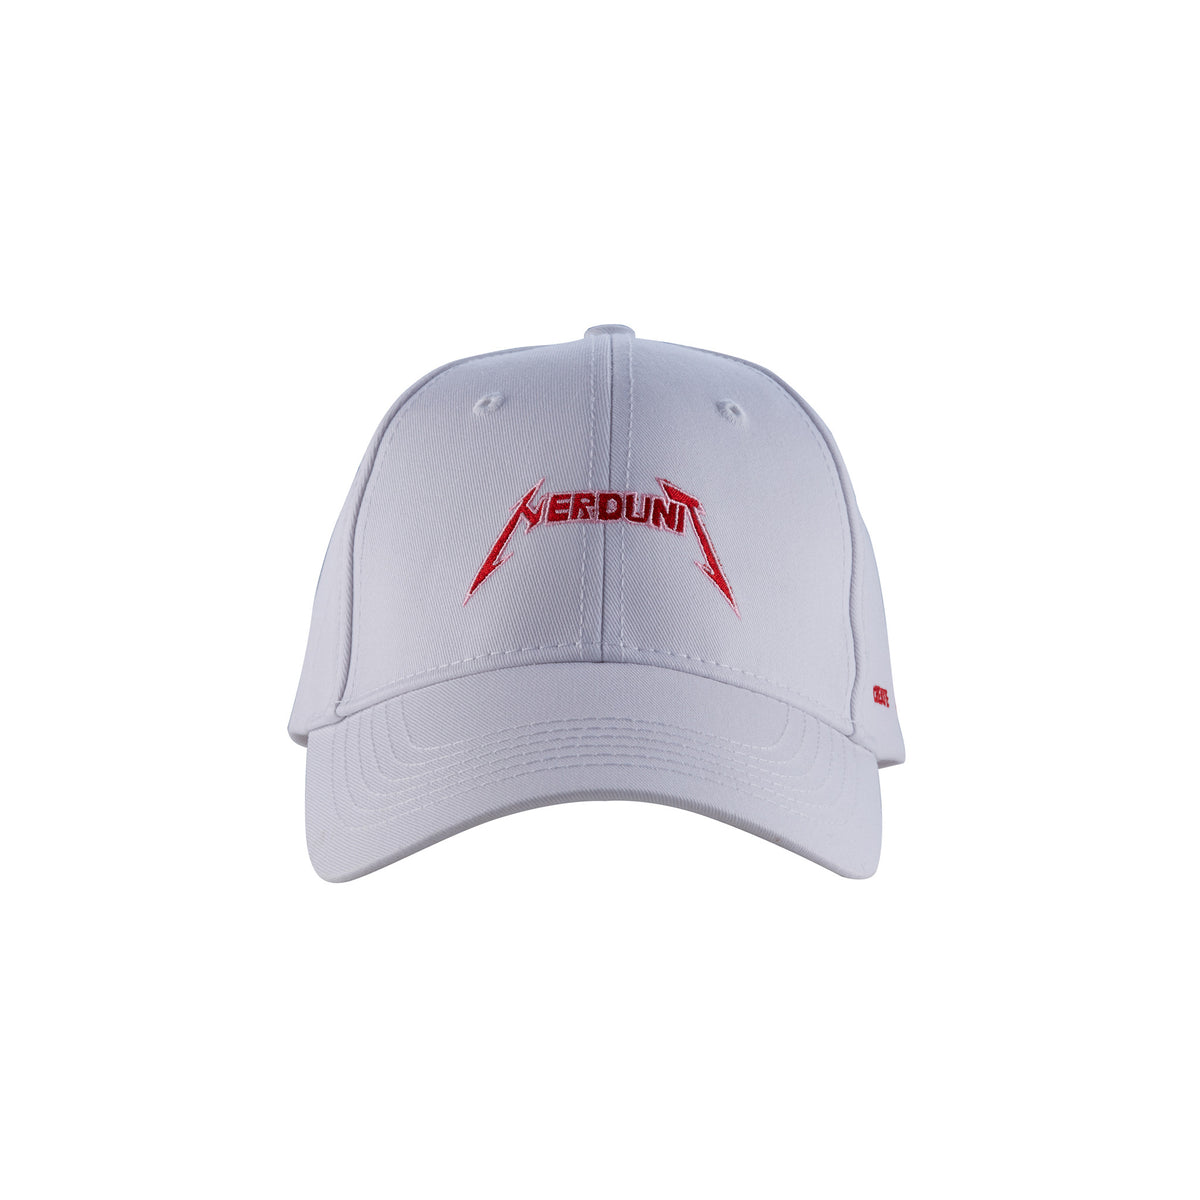 Band Baseball Cap (White)